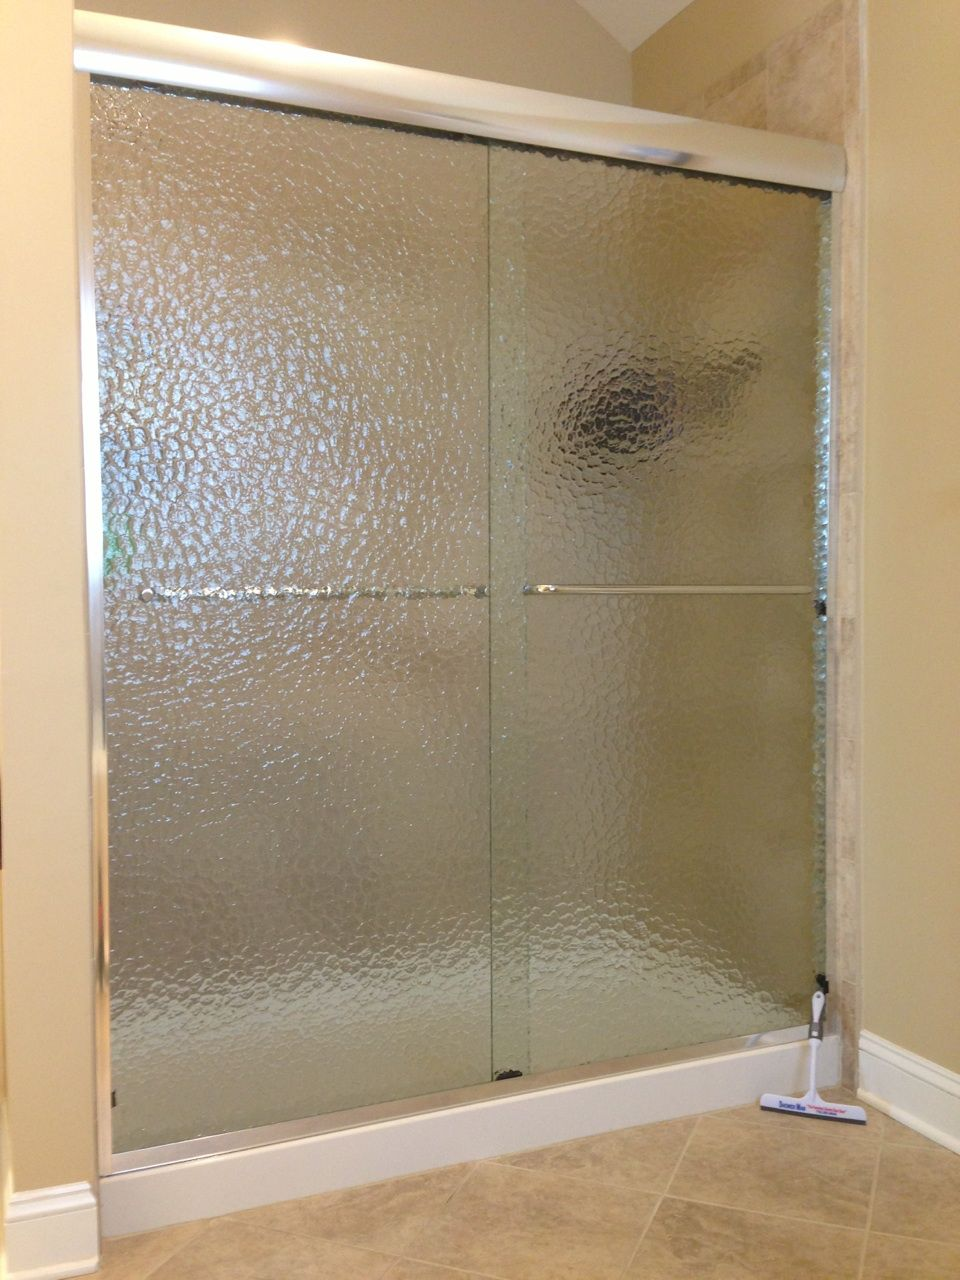 Frosted Shower Doors Shown Is A Textured Showerman Shower